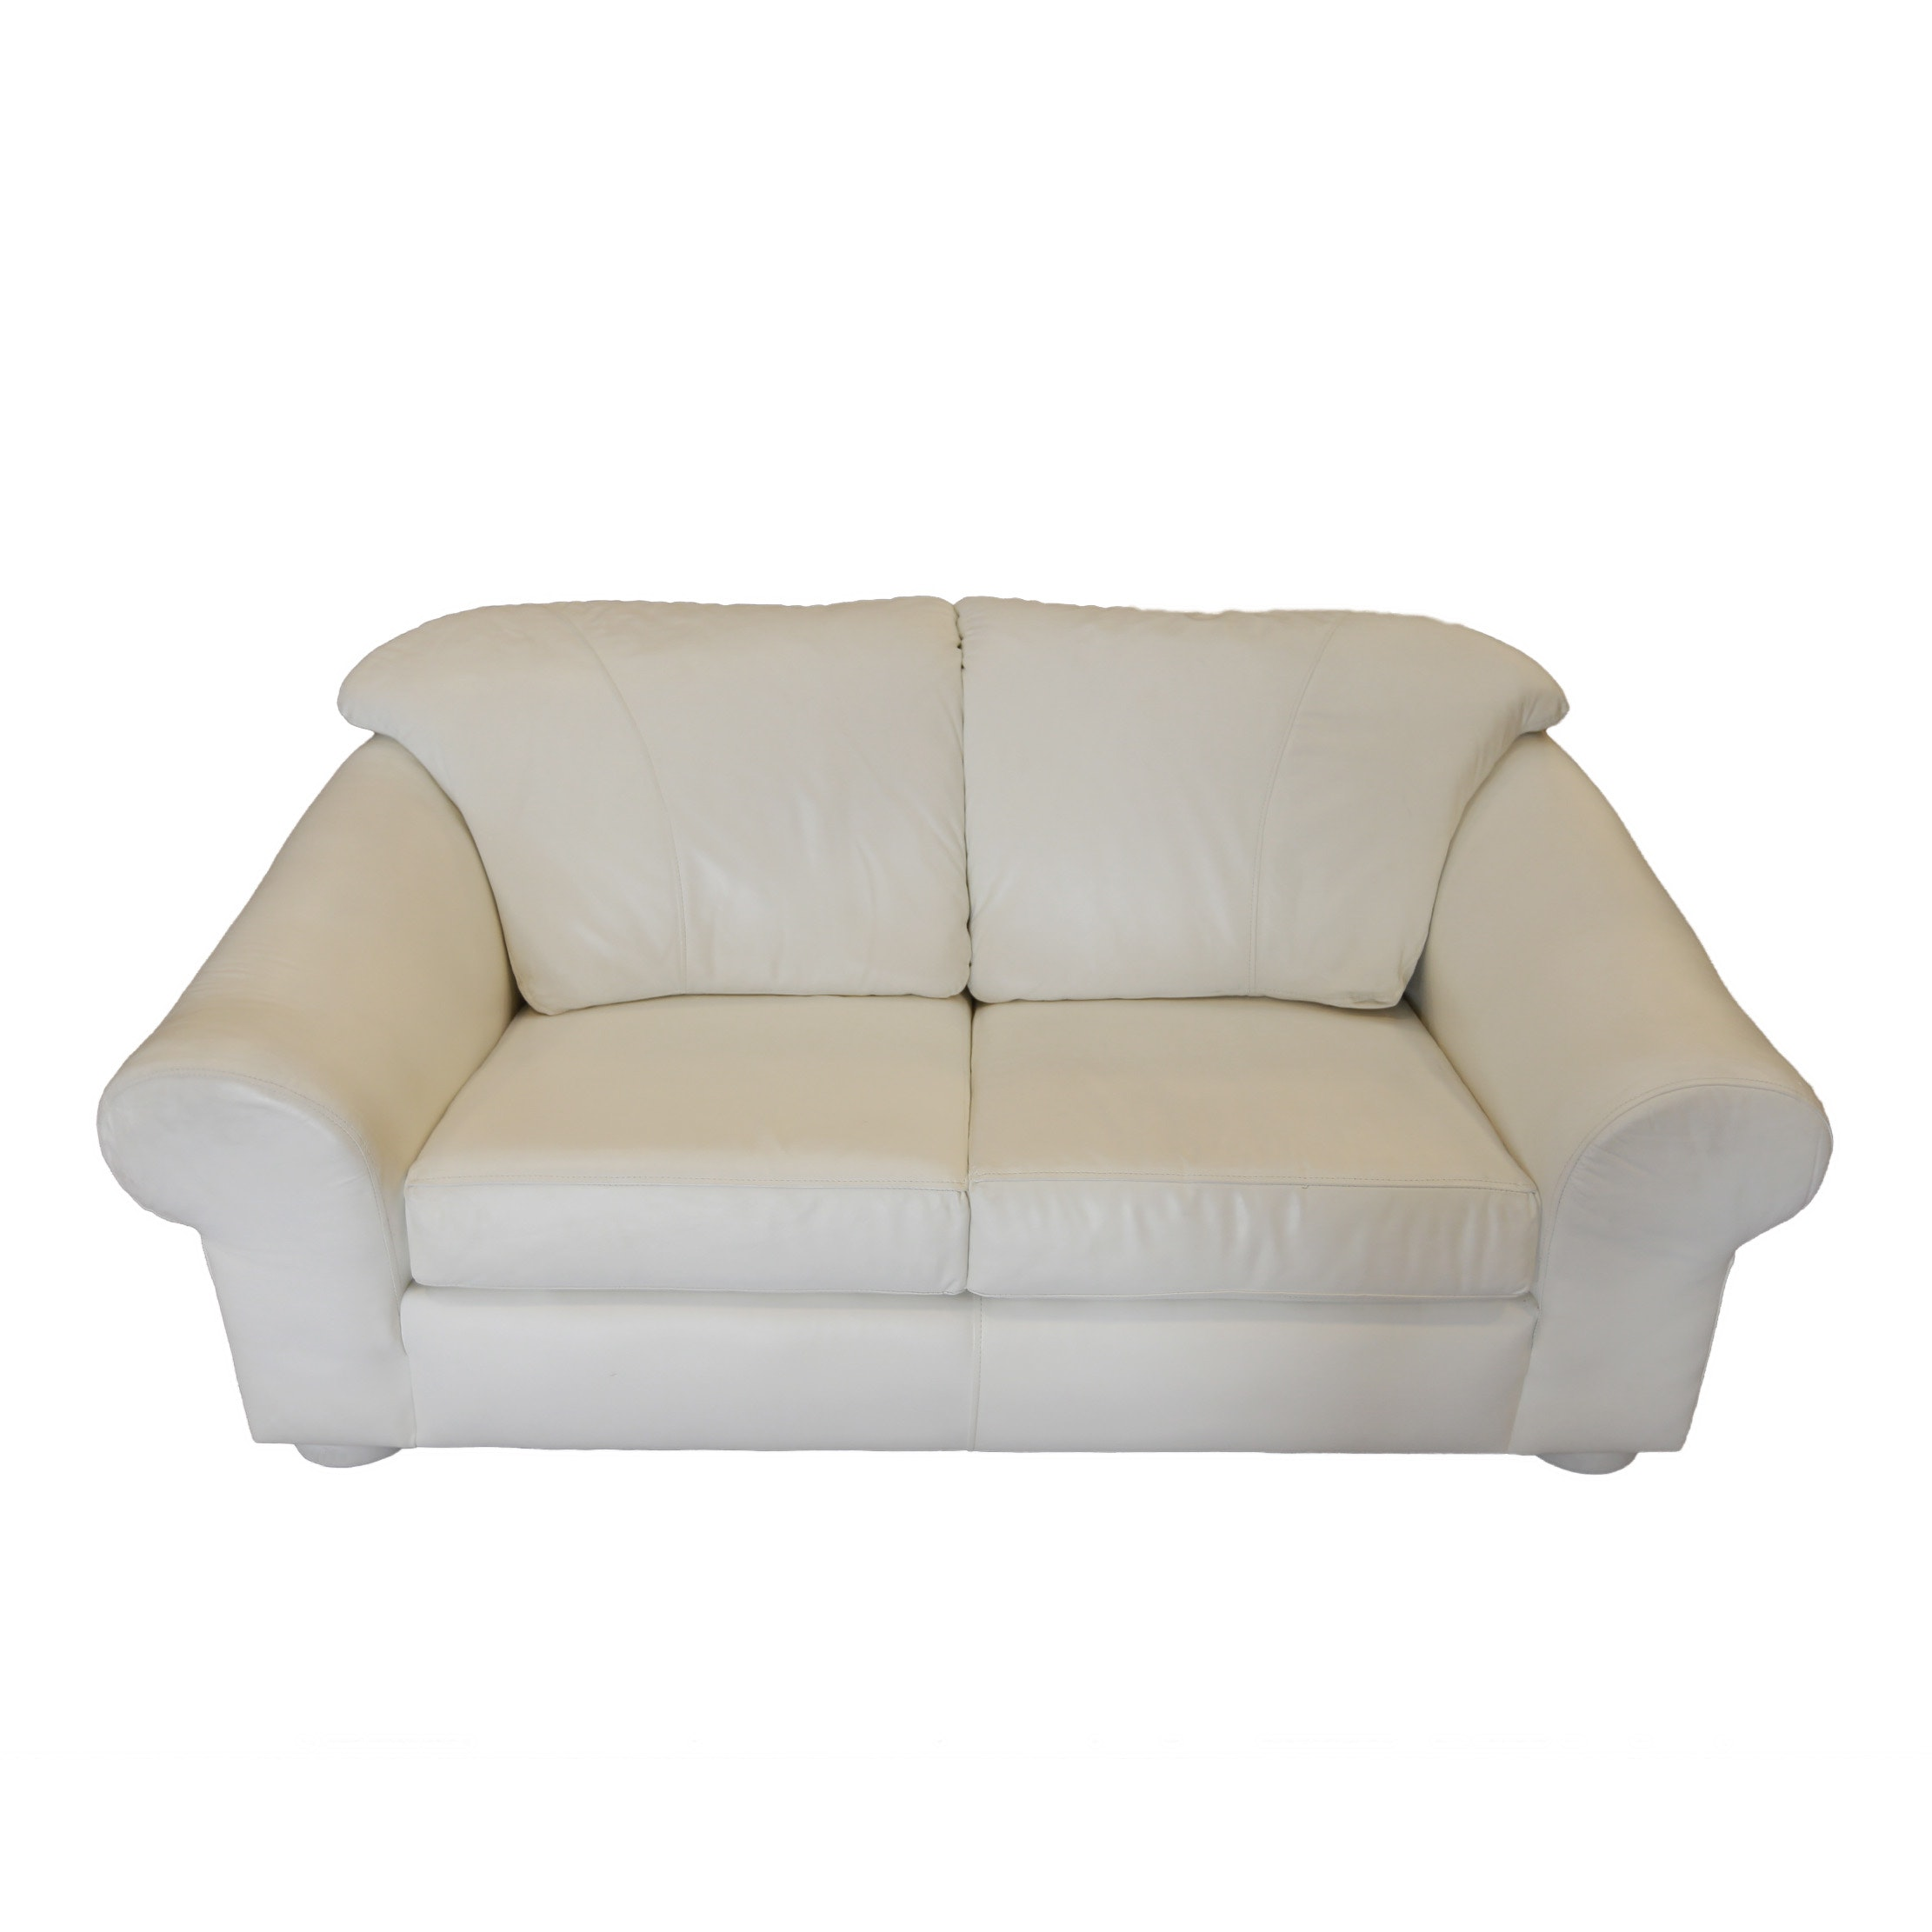 Contemporary White Leather Sofa By Creations Inc Hxqmwyu2